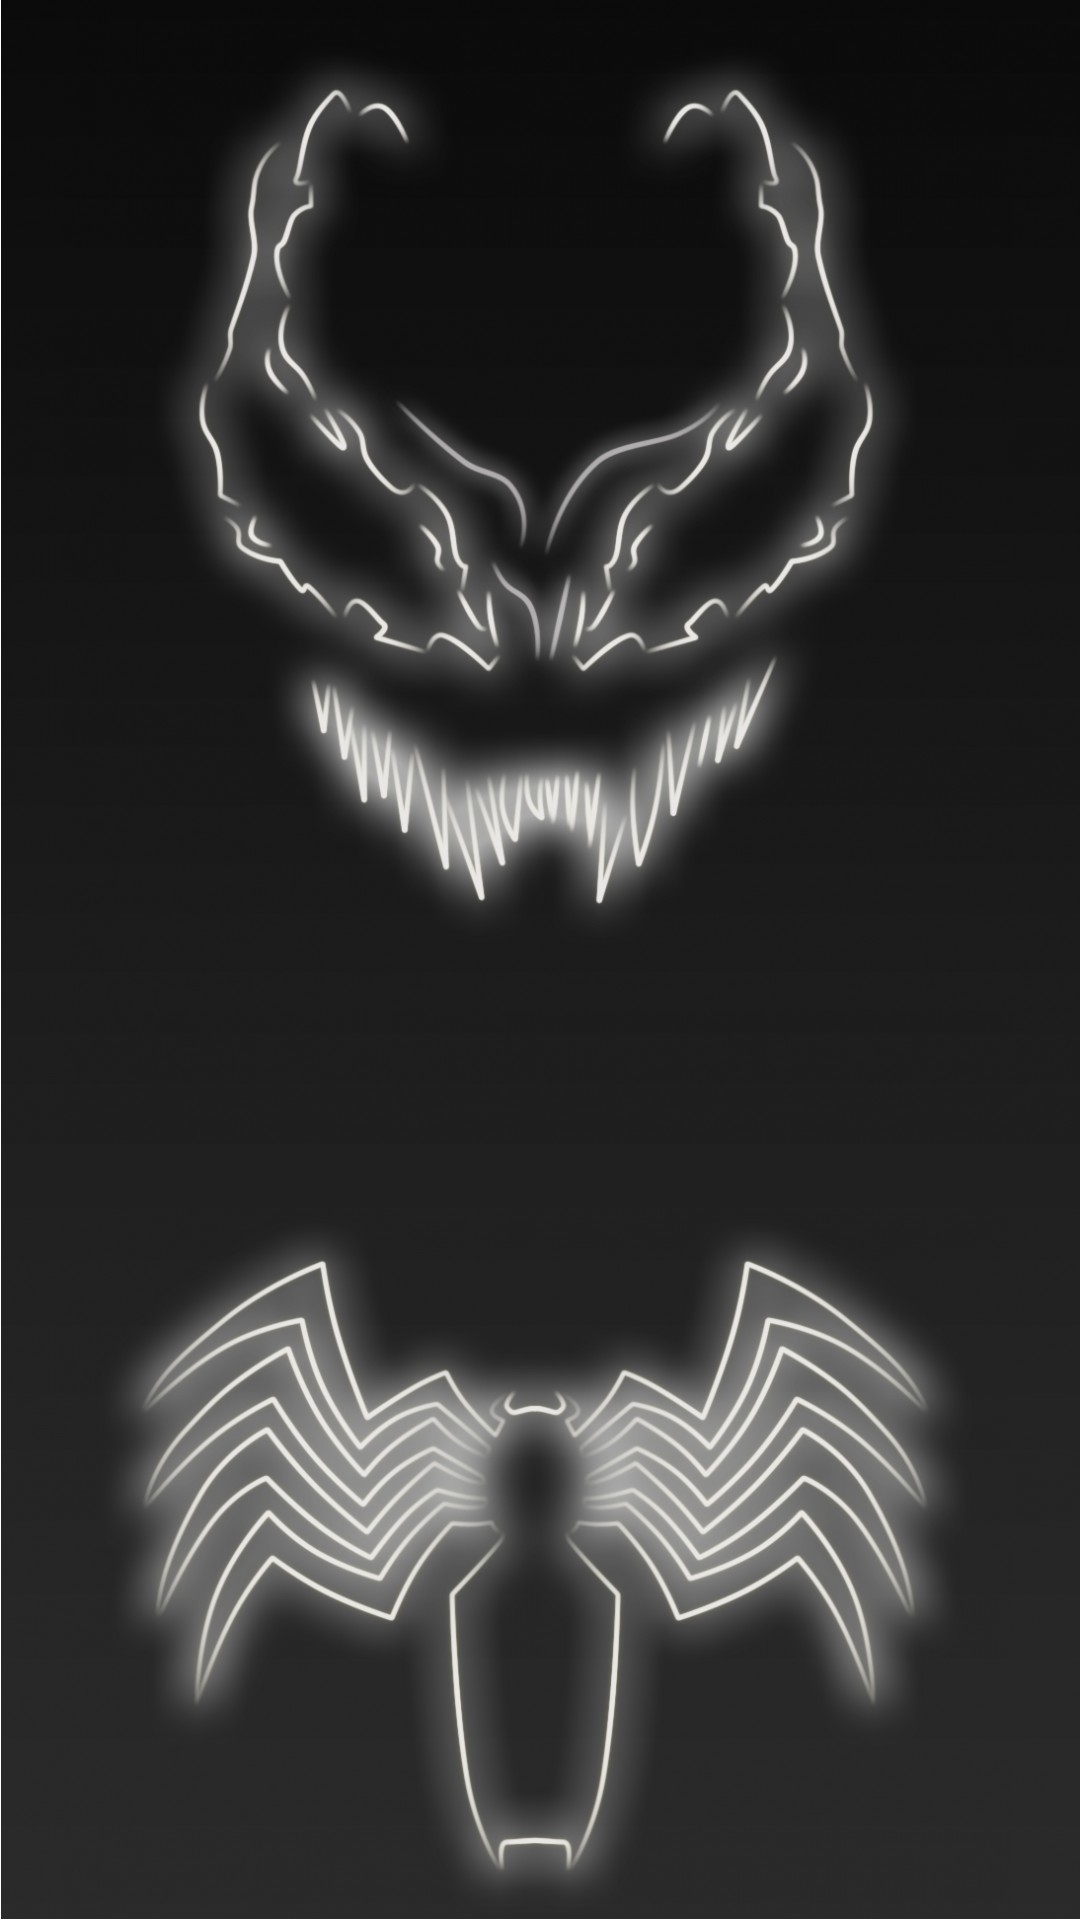 1080x1920 Neon Light Venom